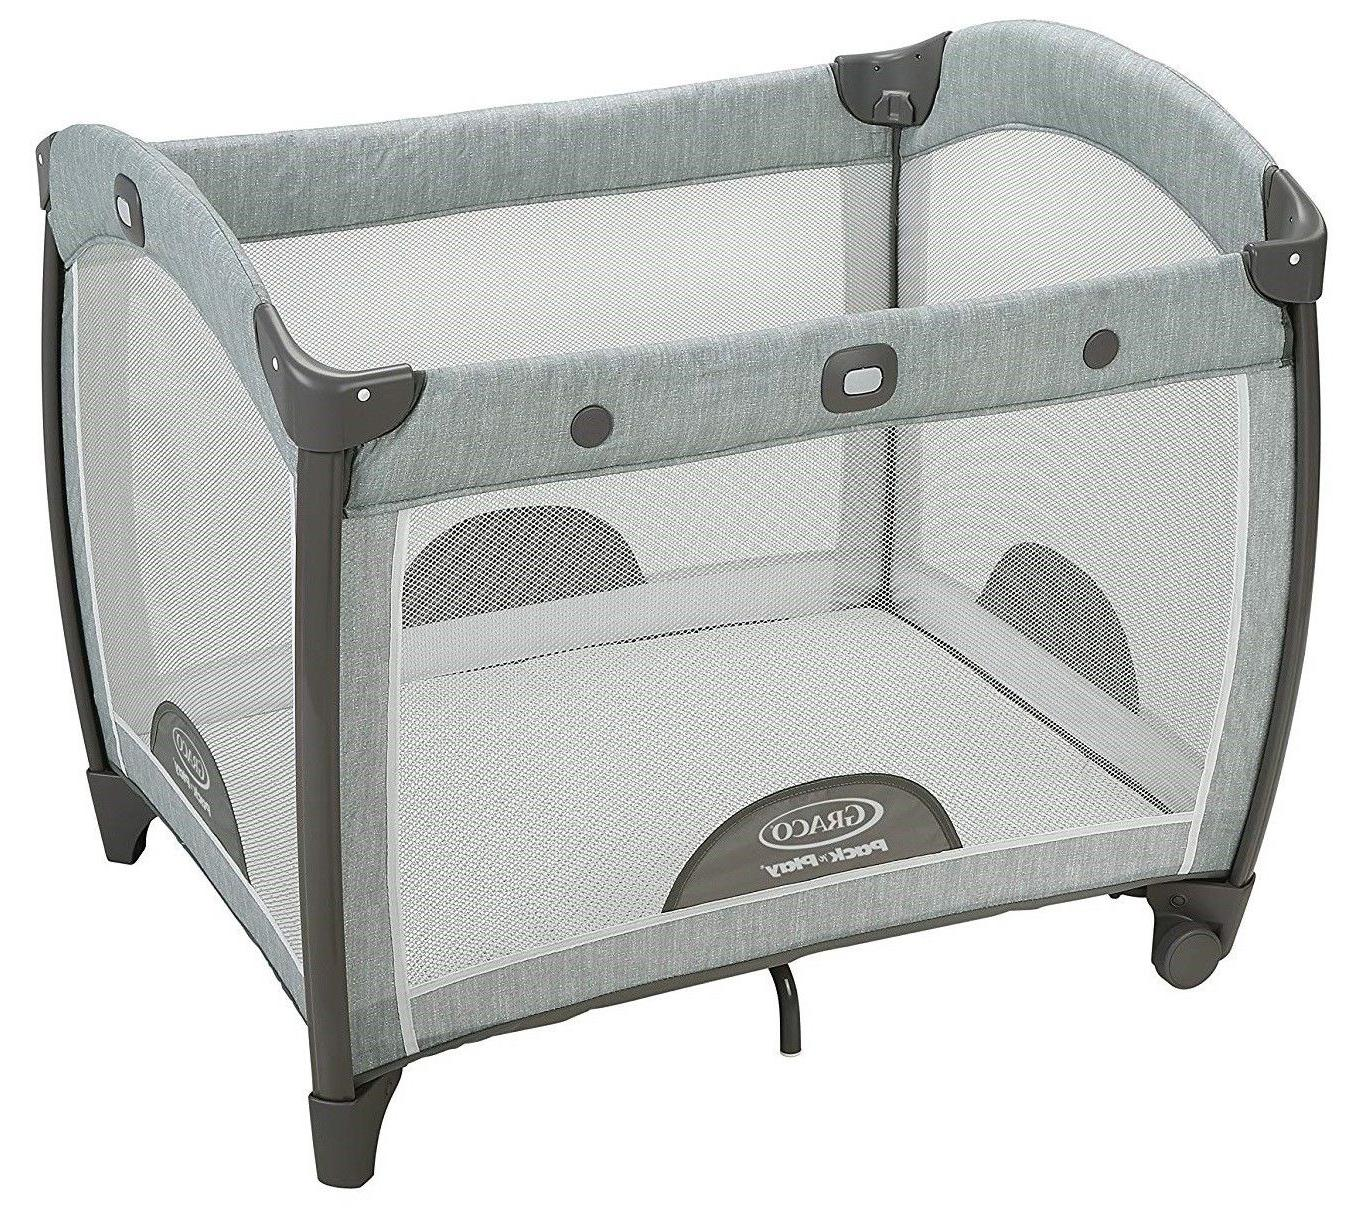 Baby Cradle Graco Graco Baby Pack N Play Day2dream Crib Bassinet